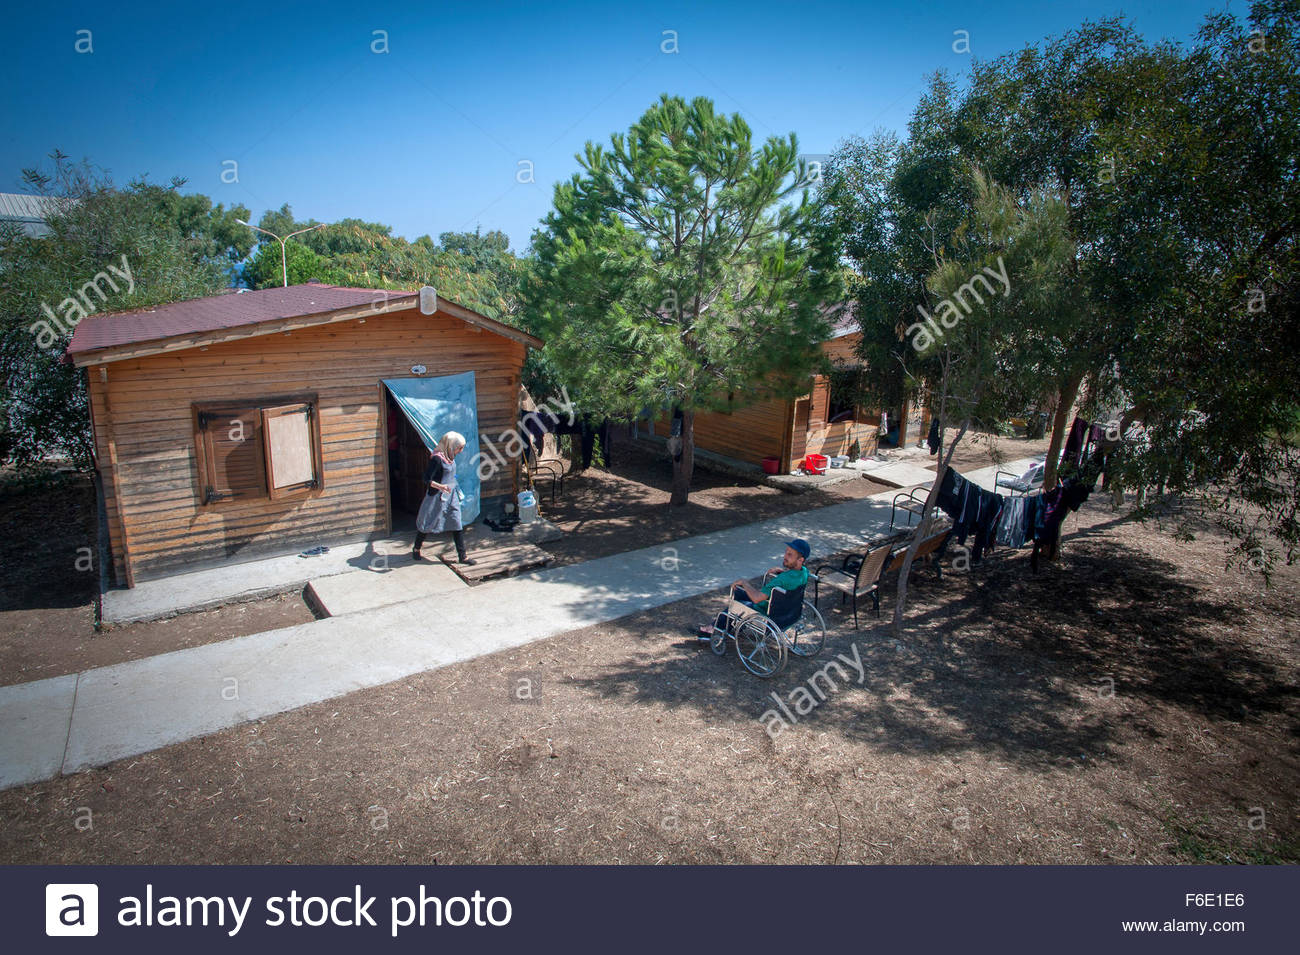 Pikpa refugee camp in Lesbos, greece. The Camp is run by the 'Village of Altogether.' - Stock Image